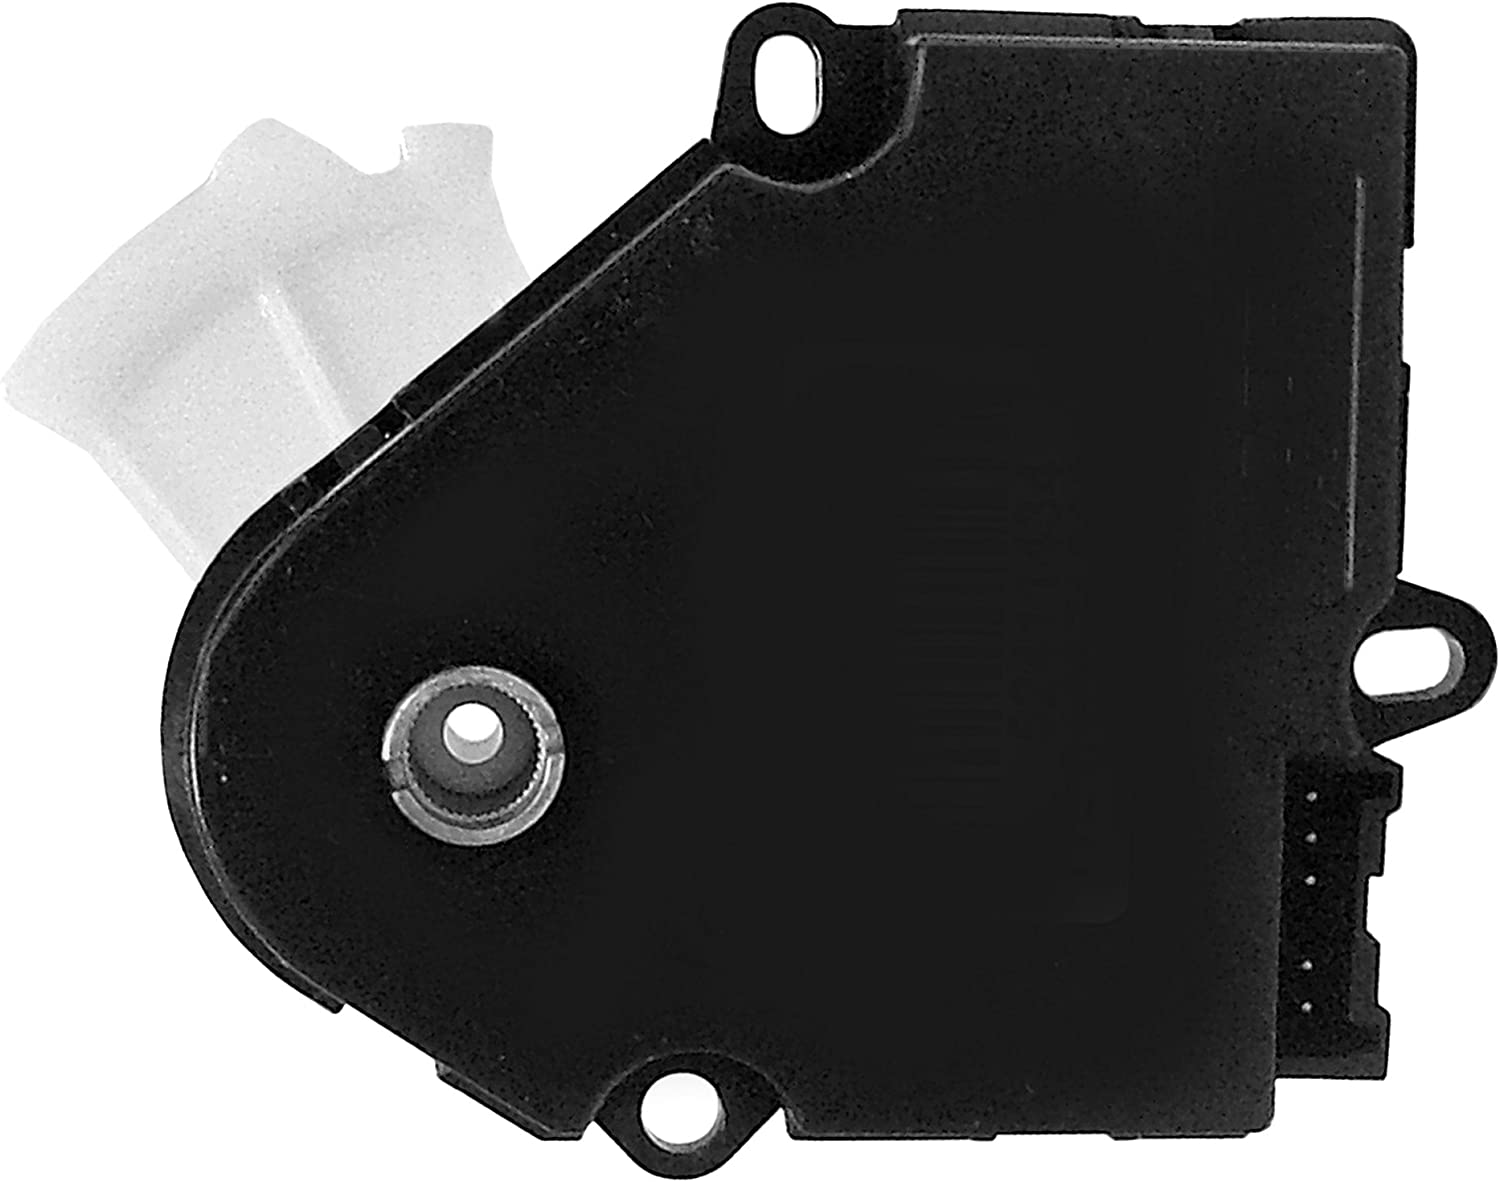 ACDelco 15-76016 GM Original Equipment Heating and Air Conditioning Control Panel Assembly